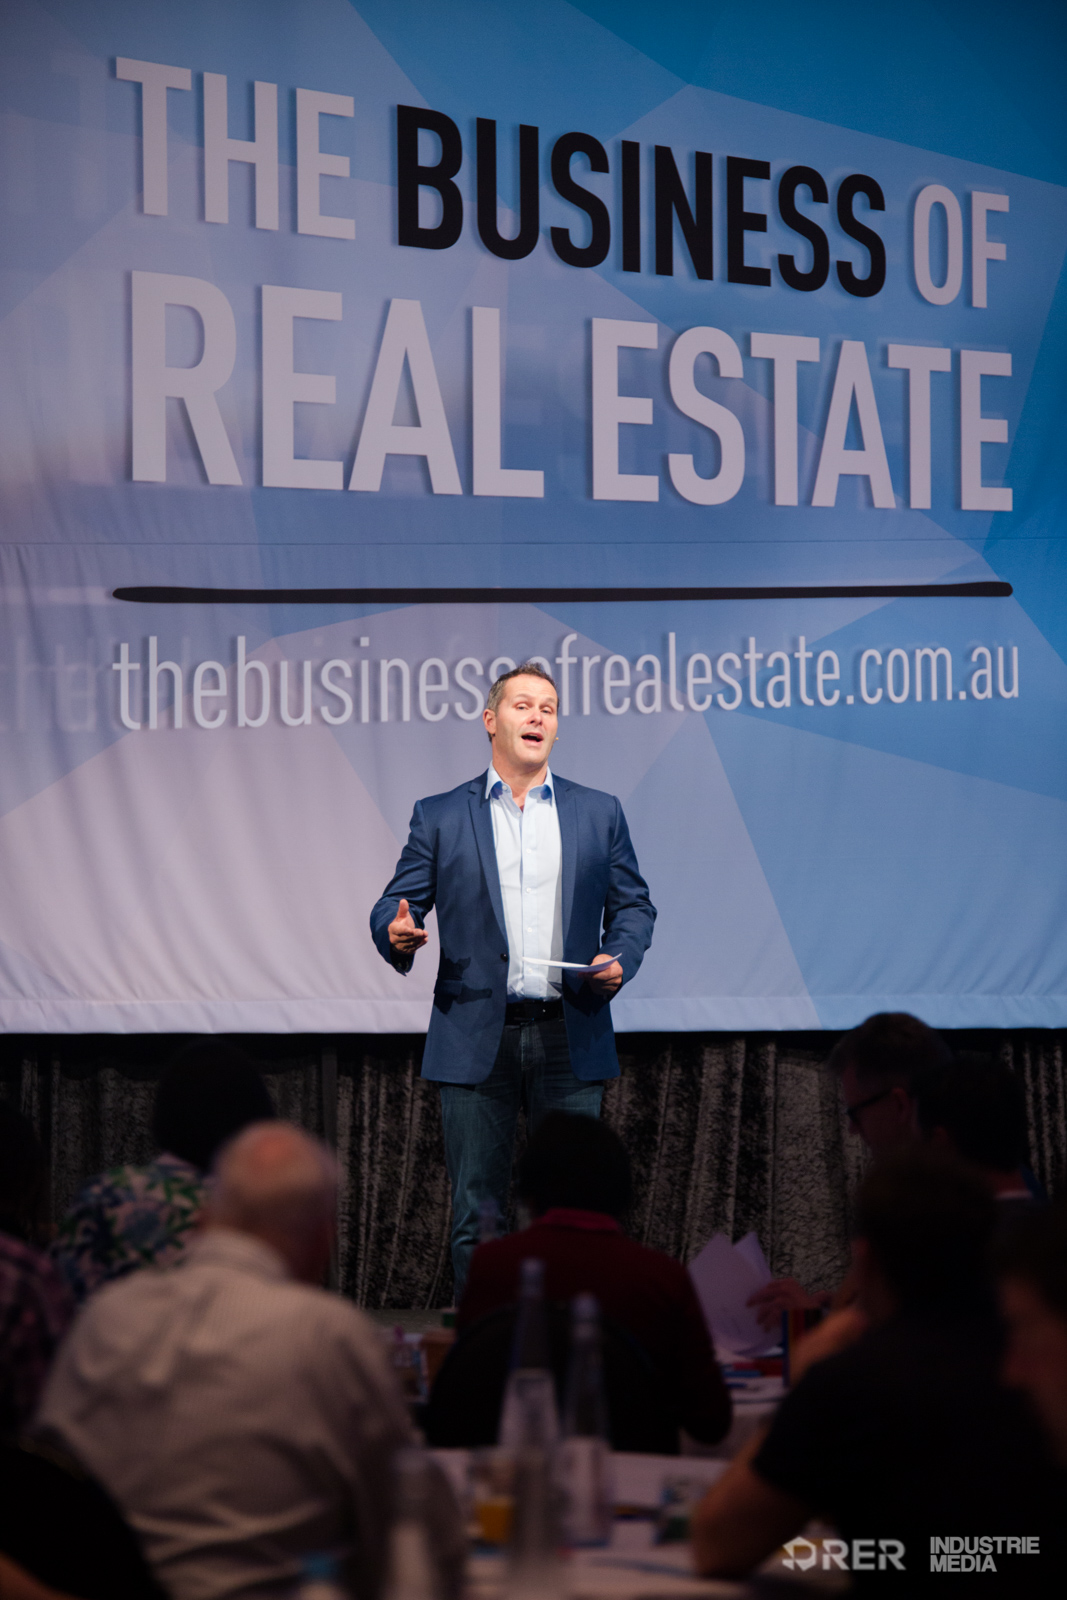 https://www.thebusinessofrealestate.com.au/wp-content/uploads/2016/09/RER_BUSINESS_OF_REAL_ESTATE-57.jpg